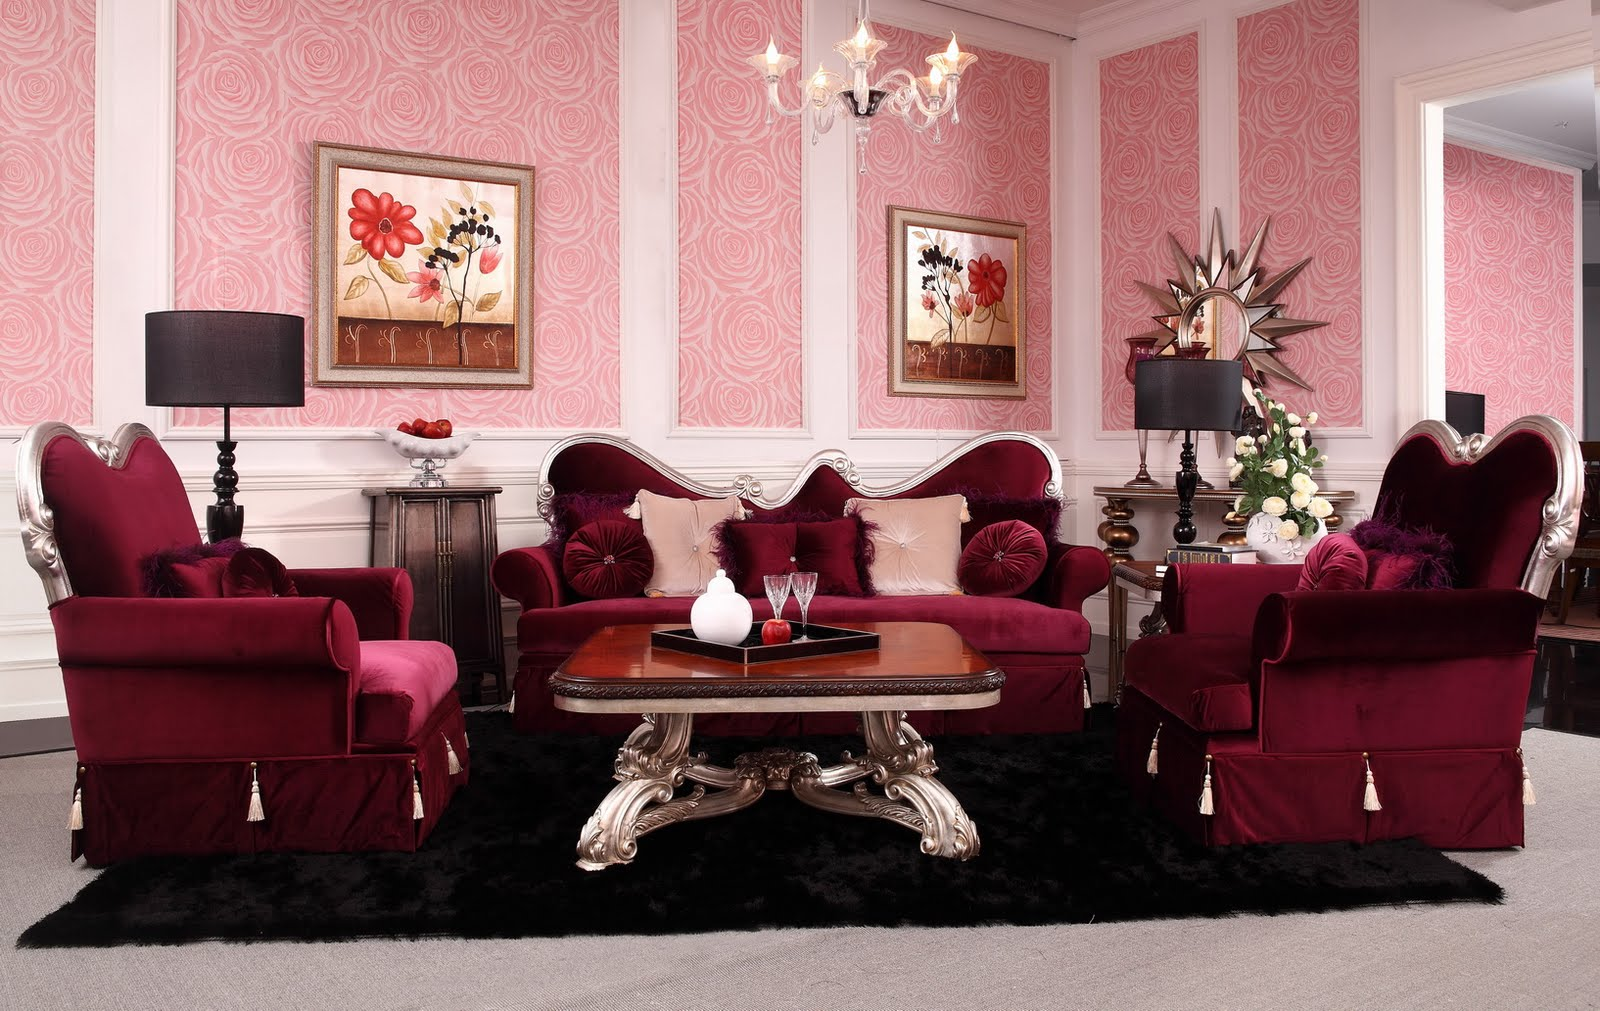 Wallpaper And Home Consignment Wallpaper Home